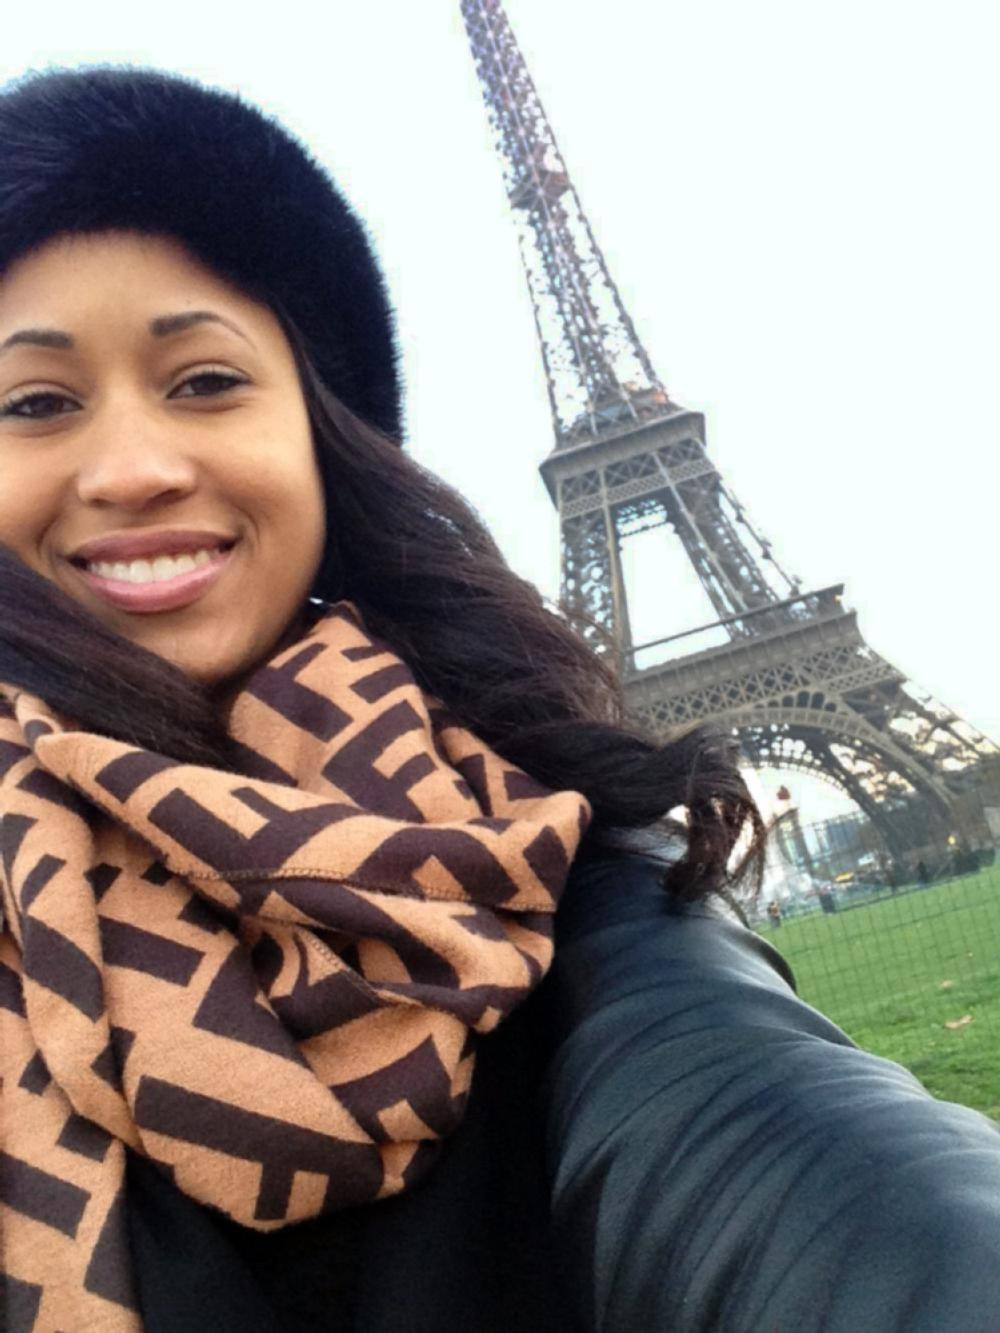 Eiffel Tower ODU Student